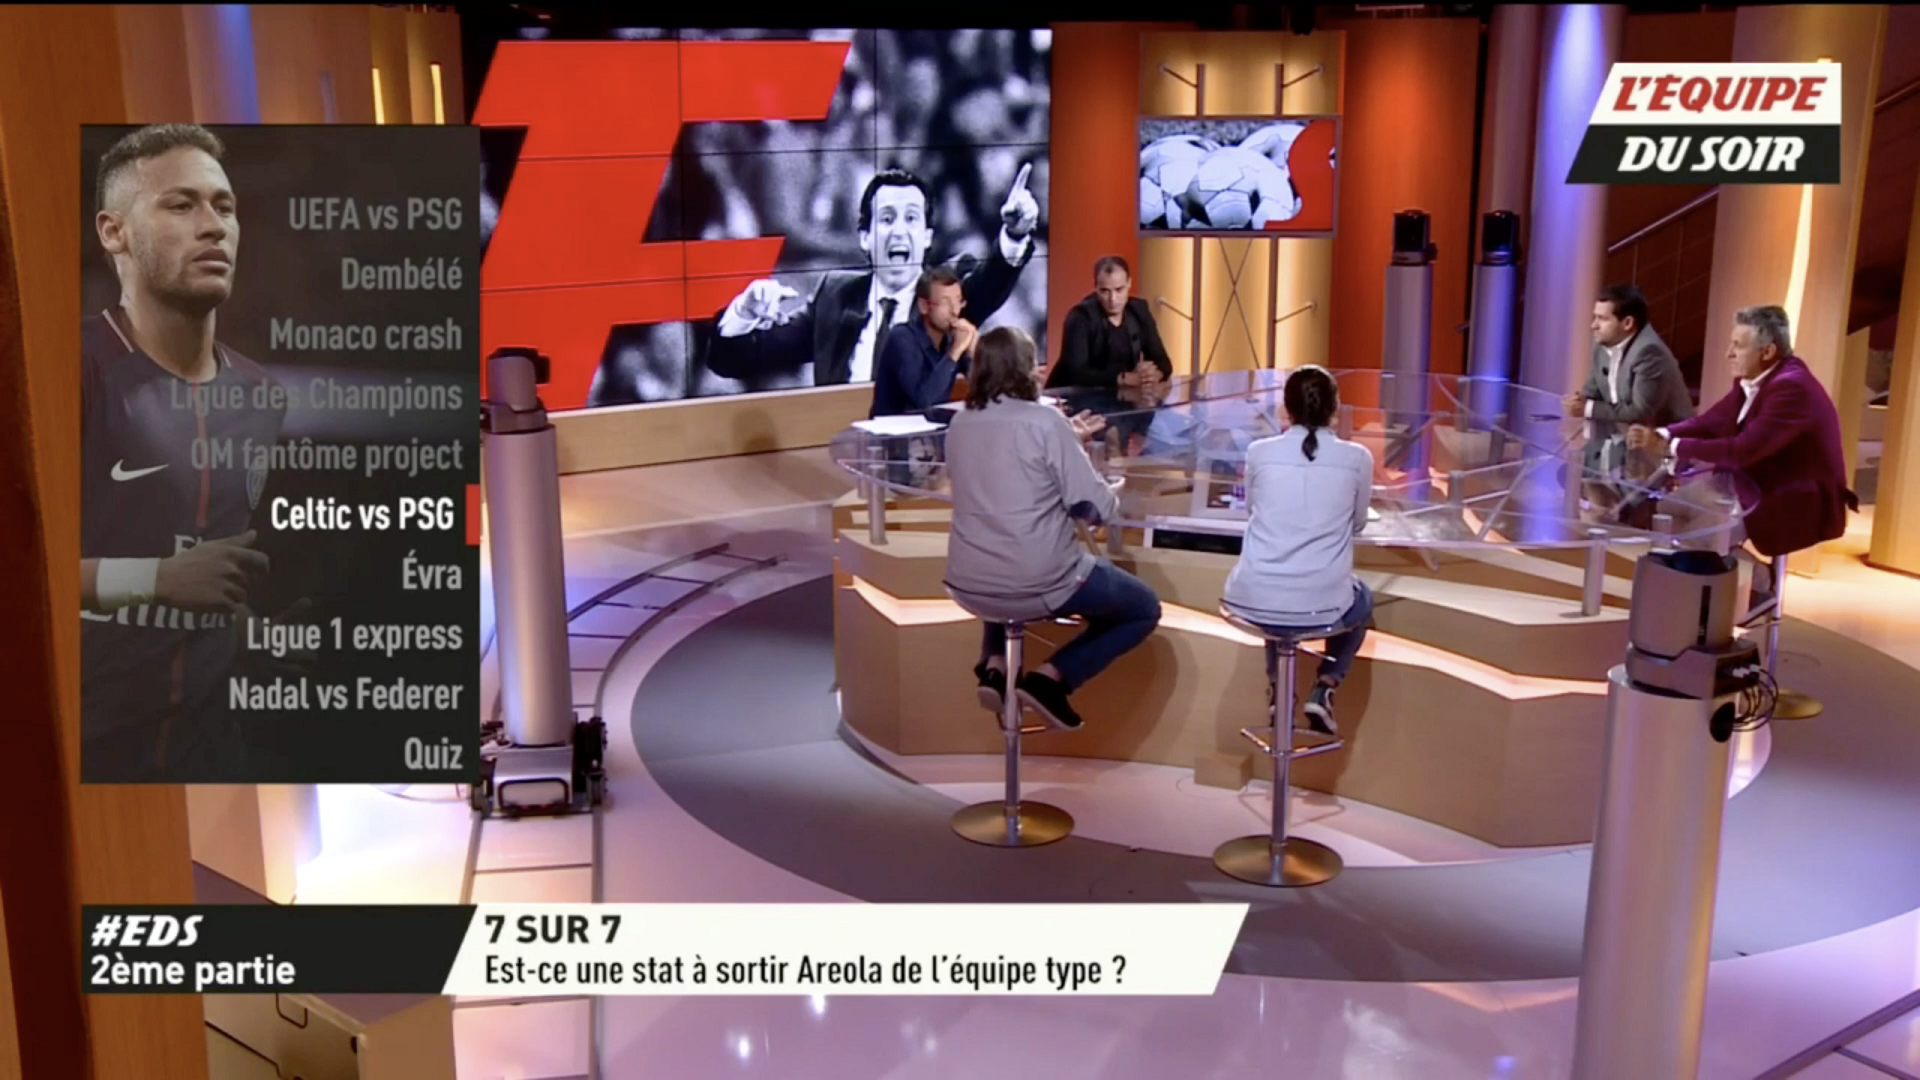 L'EQUIPE, sports en direct screenshot 20